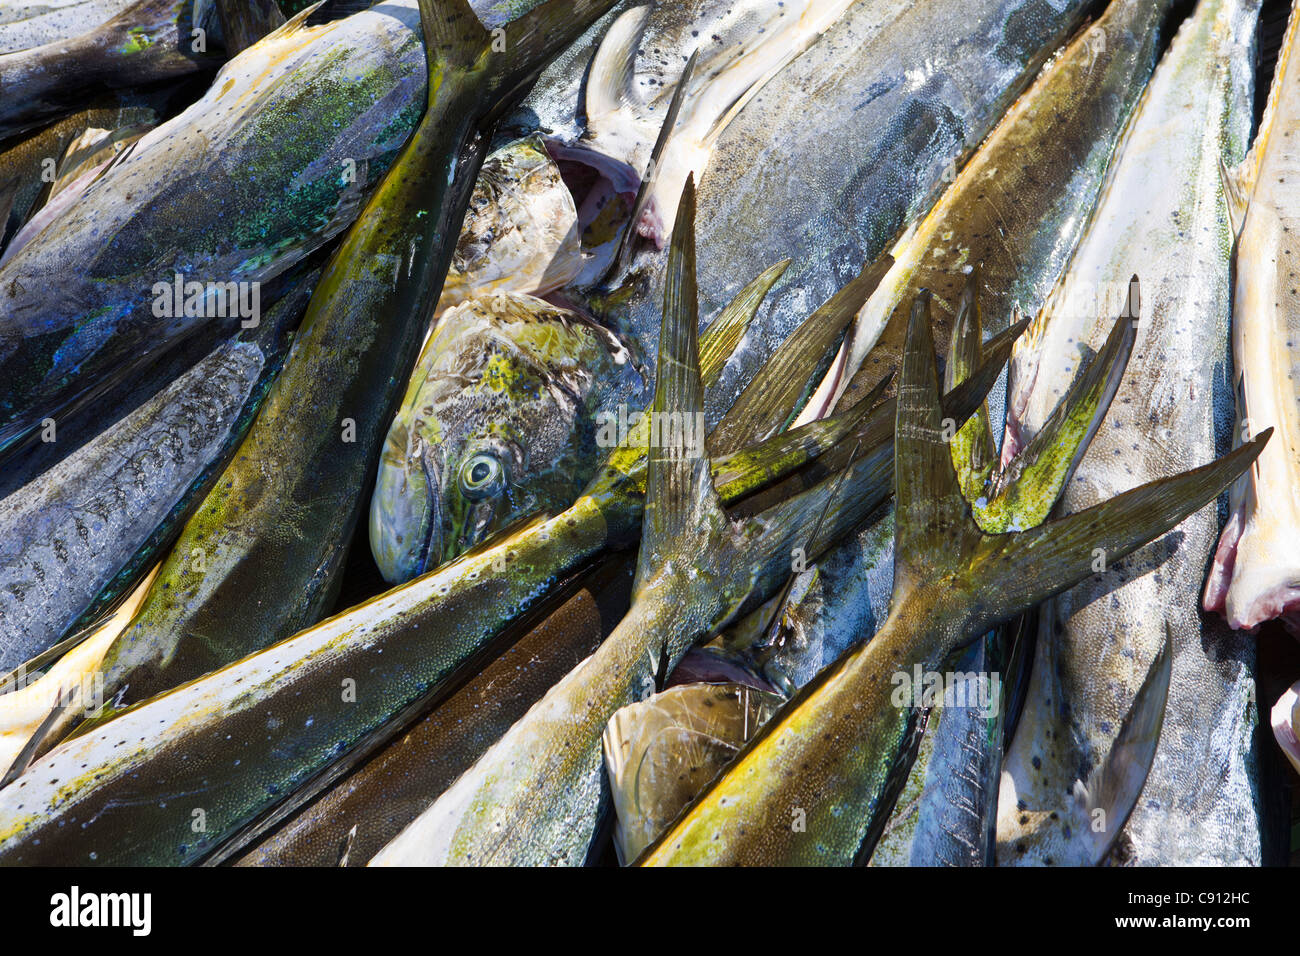 The Netherlands, Bonaire Island, Dutch Caribbean, Kralendijk, Sea fish caught for restaurant. - Stock Image